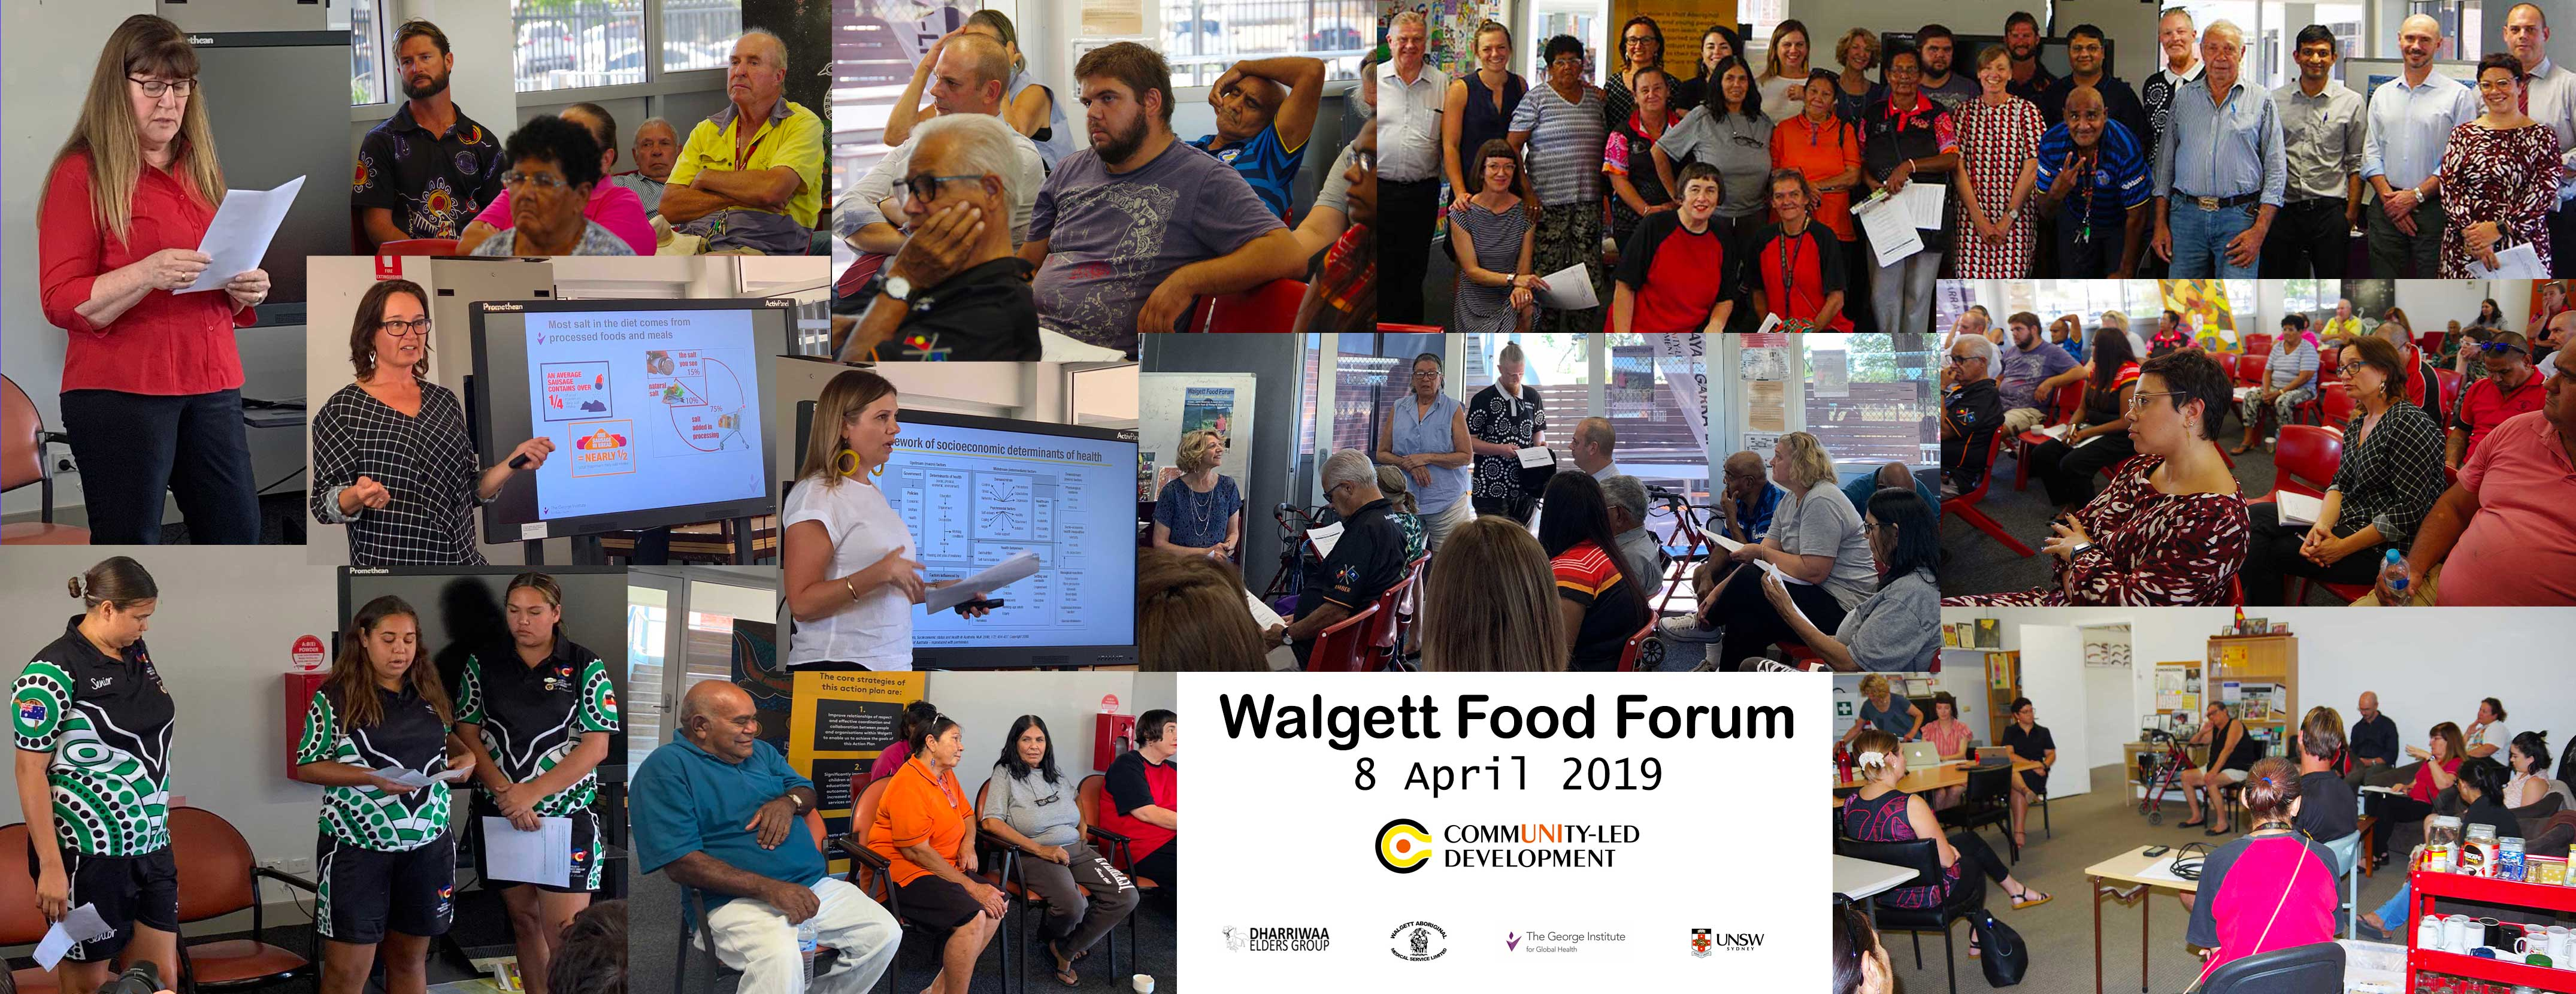 composite of scenes from the Walgett Food Forum 8 April 2019